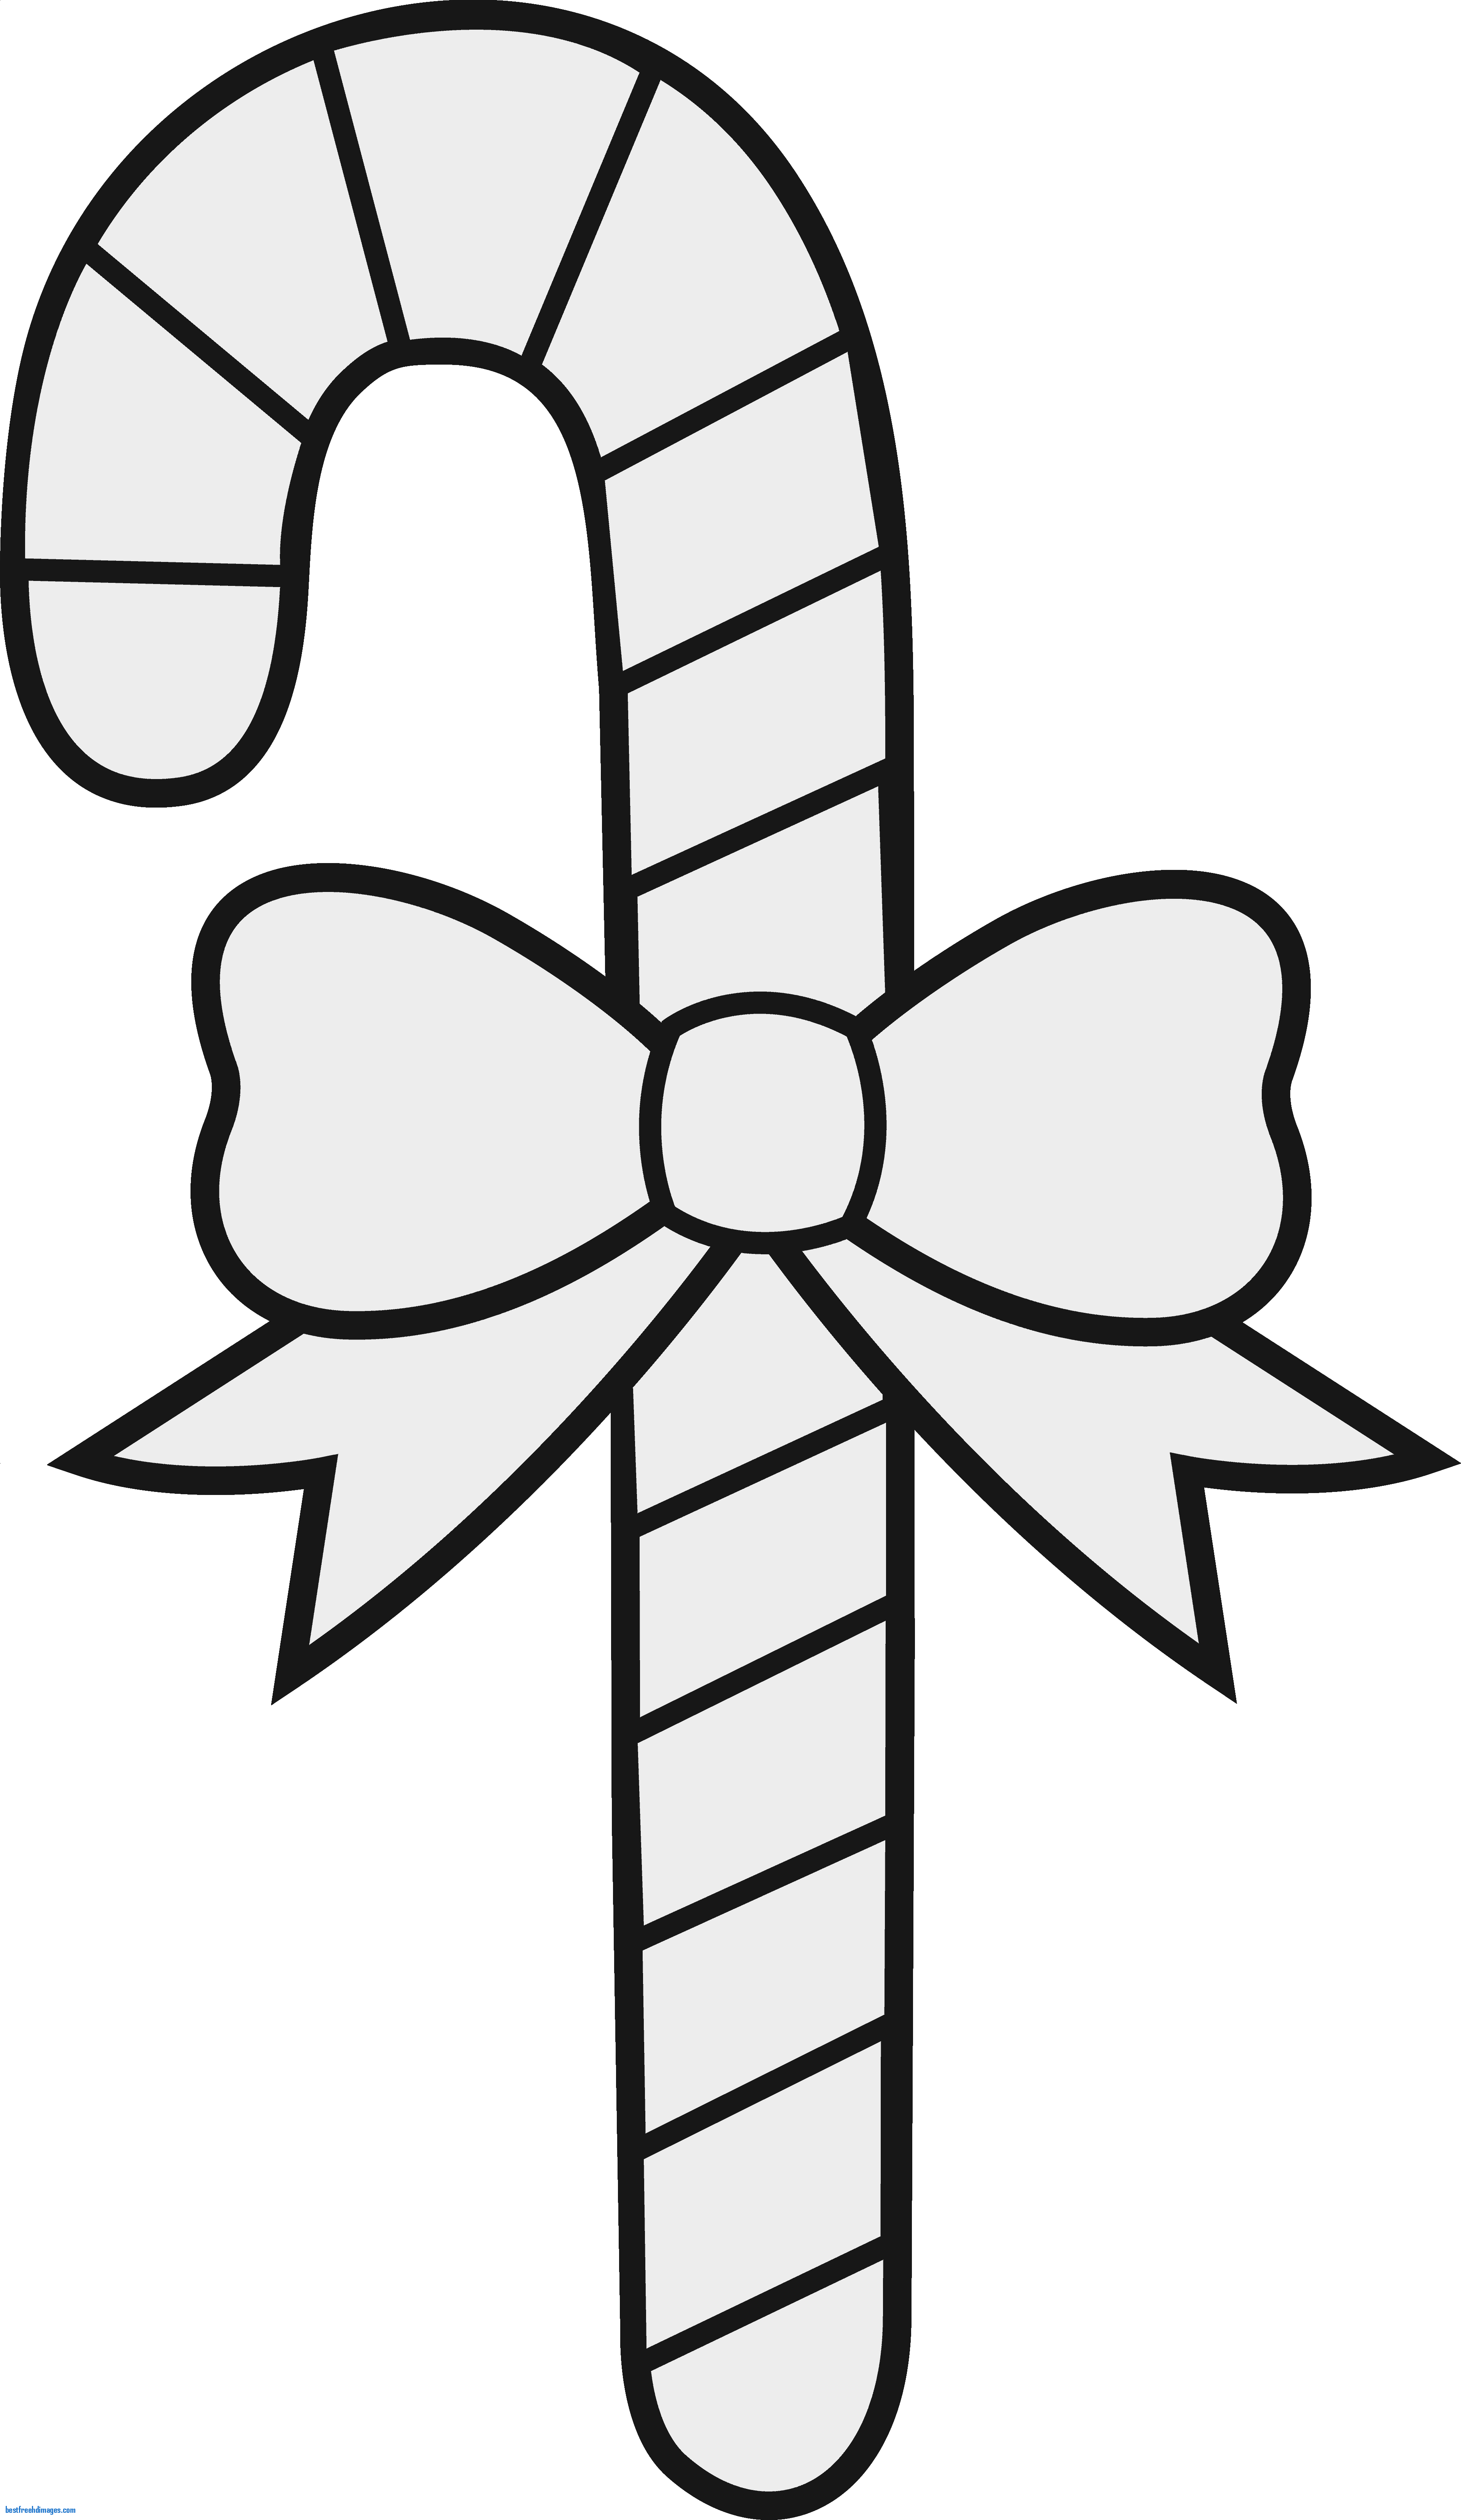 Pinwheel drawing black and white. Handcuffs vector freeuse